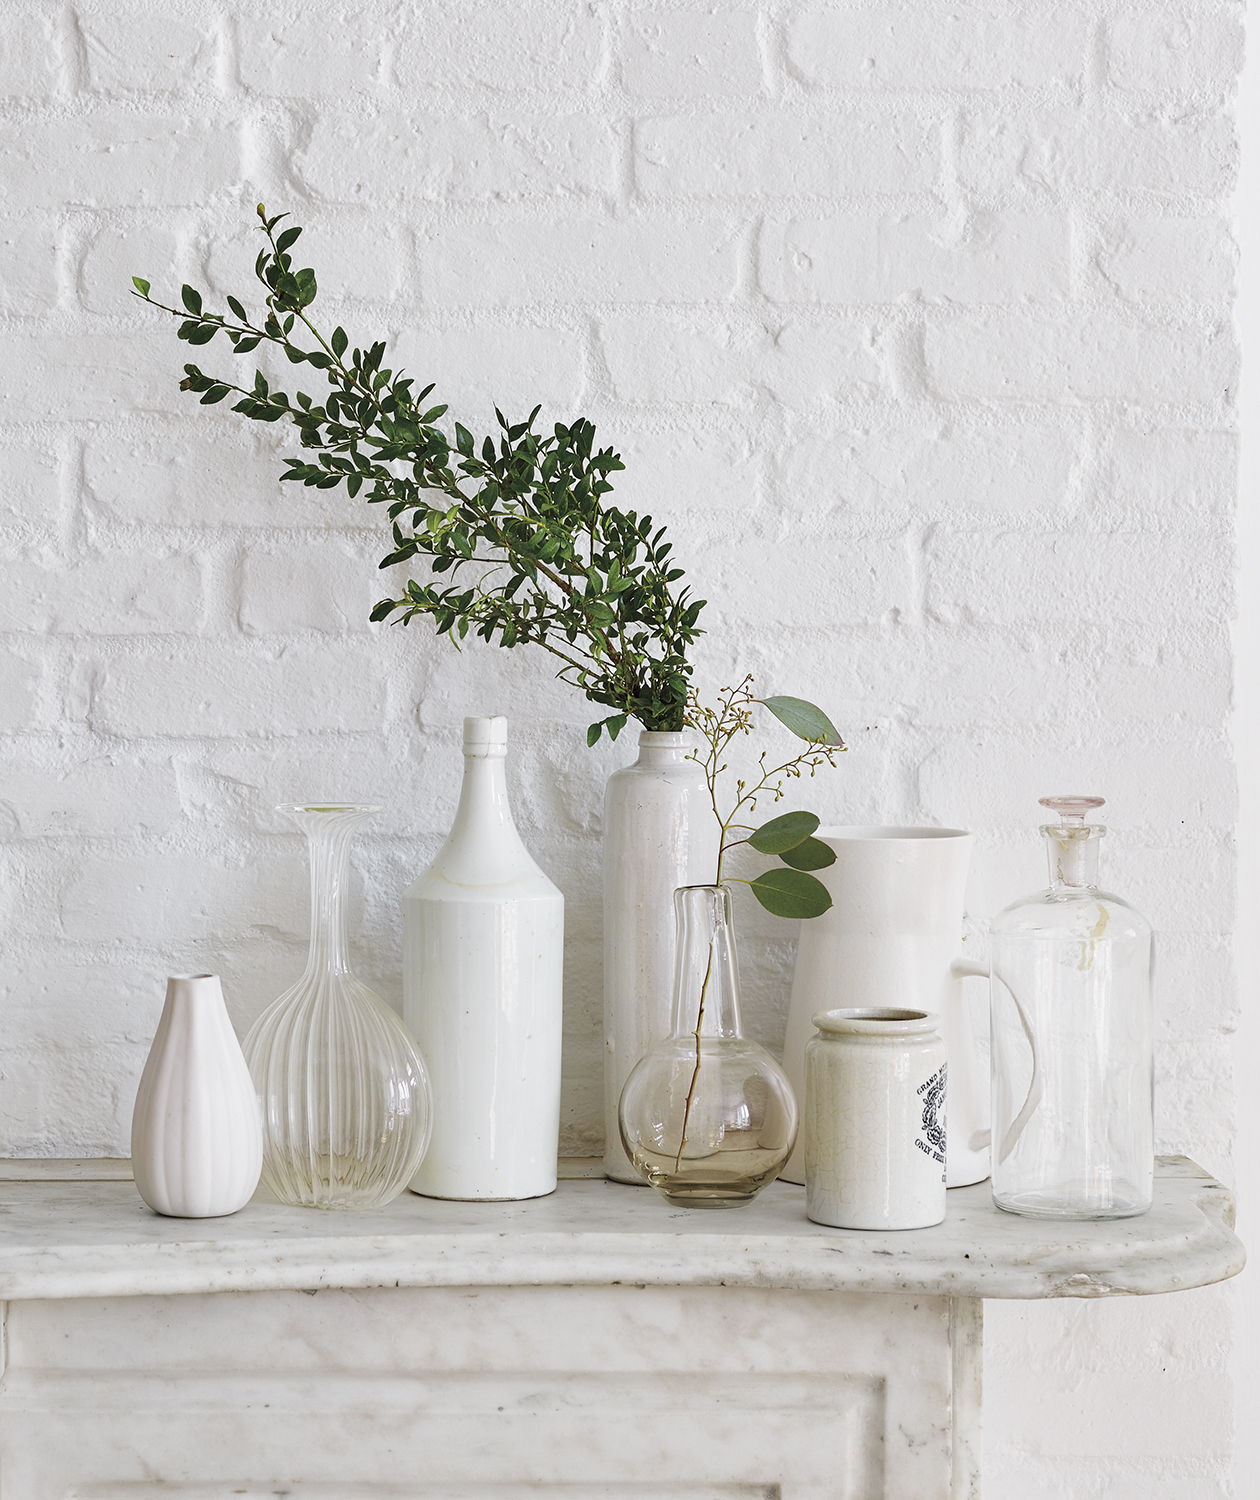 White and clear vases with branches